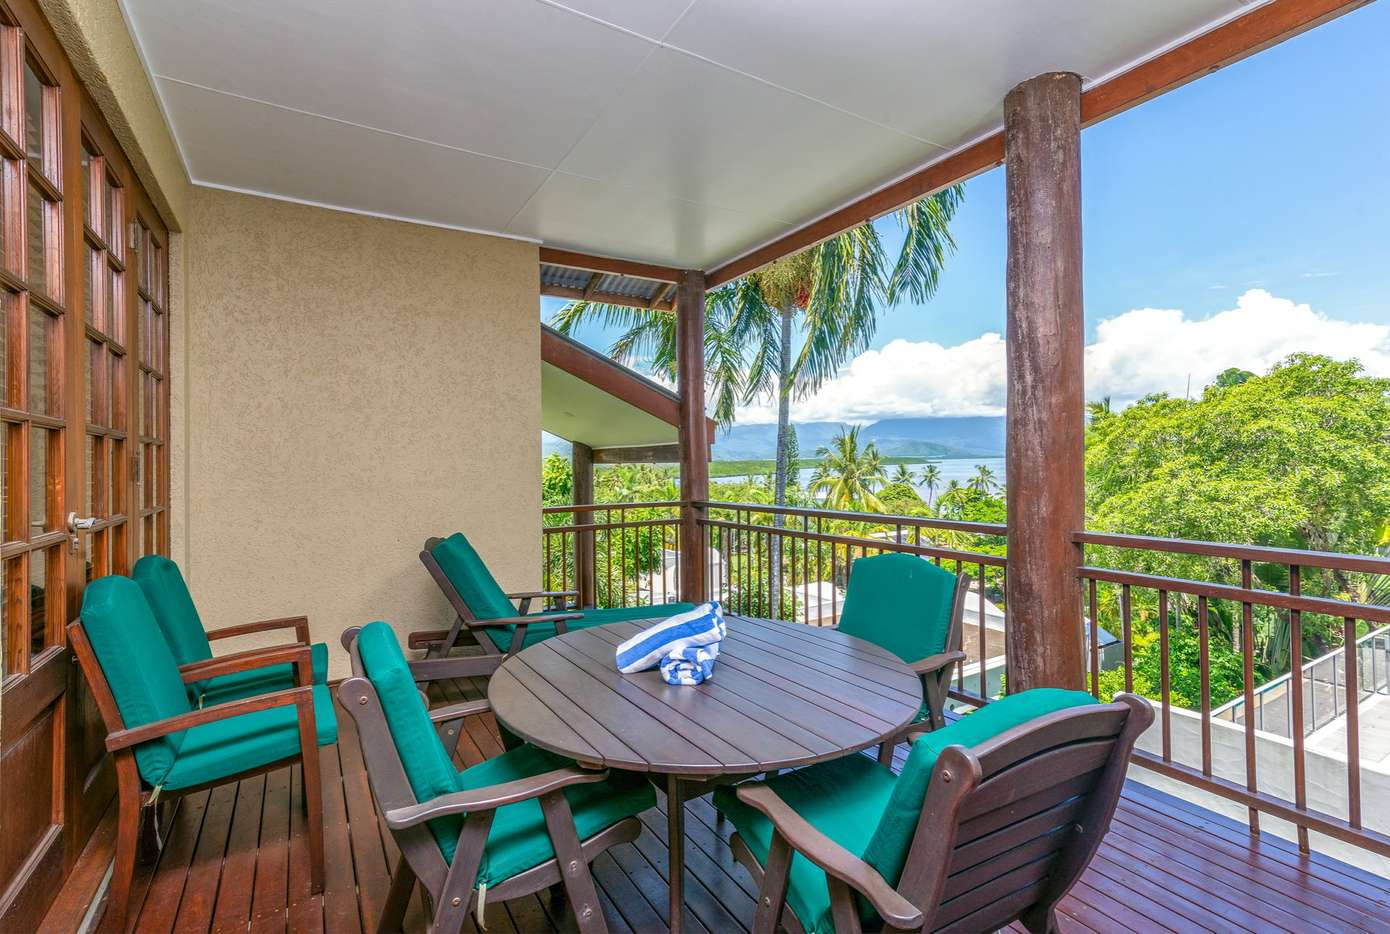 Main view of Homely villa listing, Address available on request, Port Douglas, QLD 4877